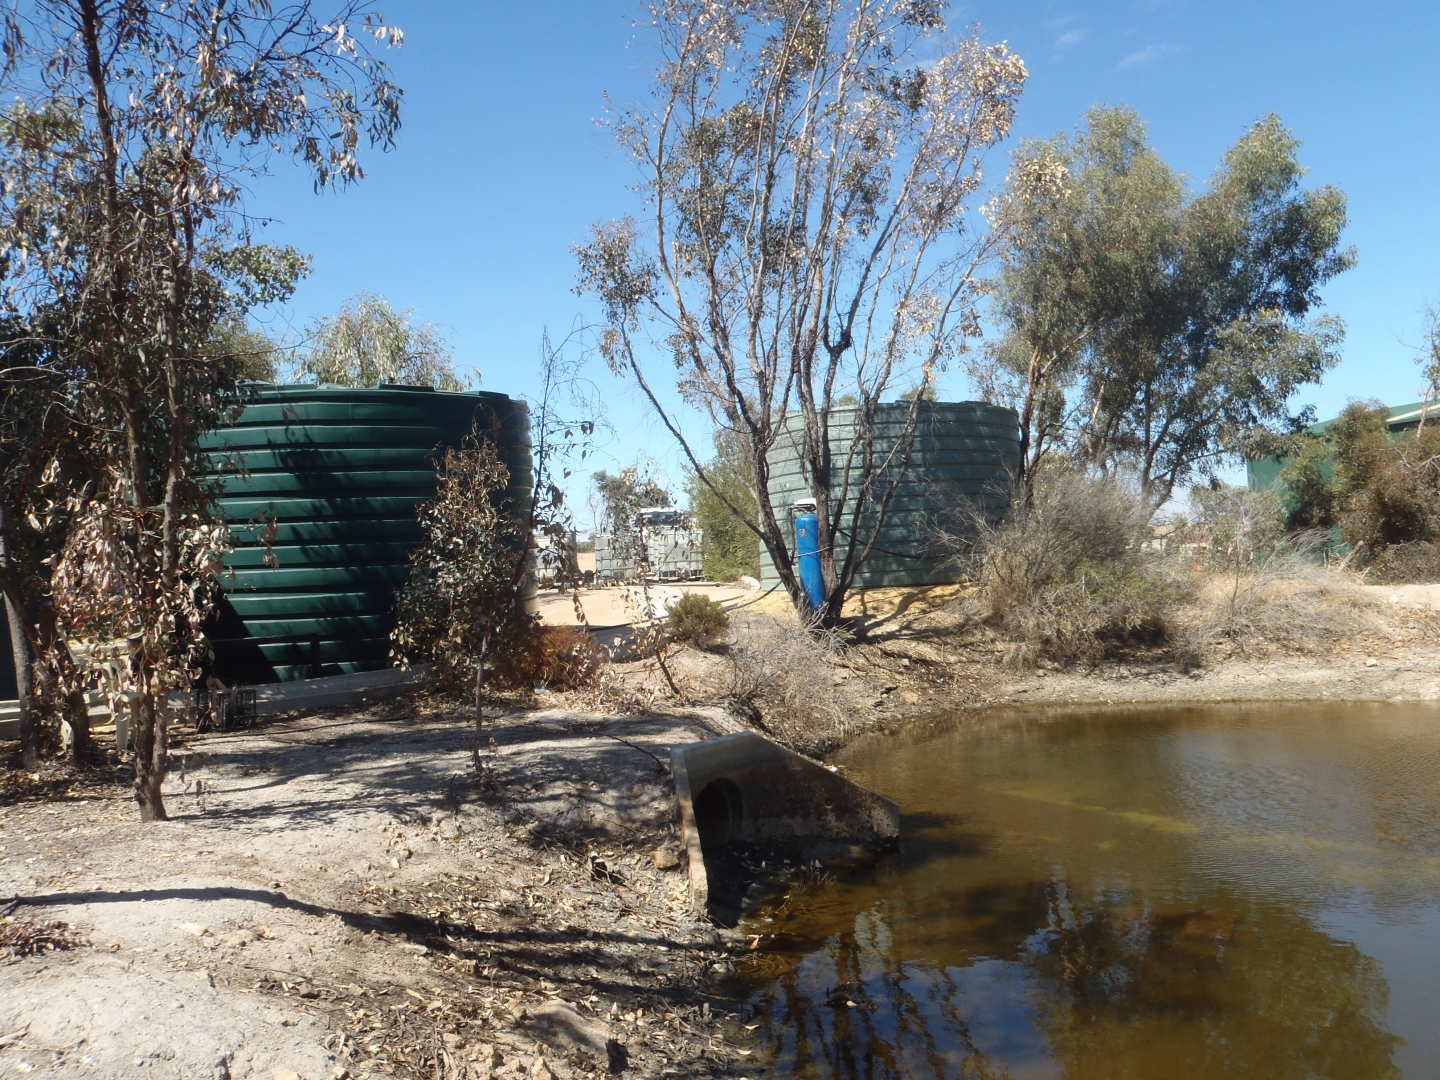 Contaminated Site Investigation & Remediation - Leeming Road, Grass Valley : Image 2